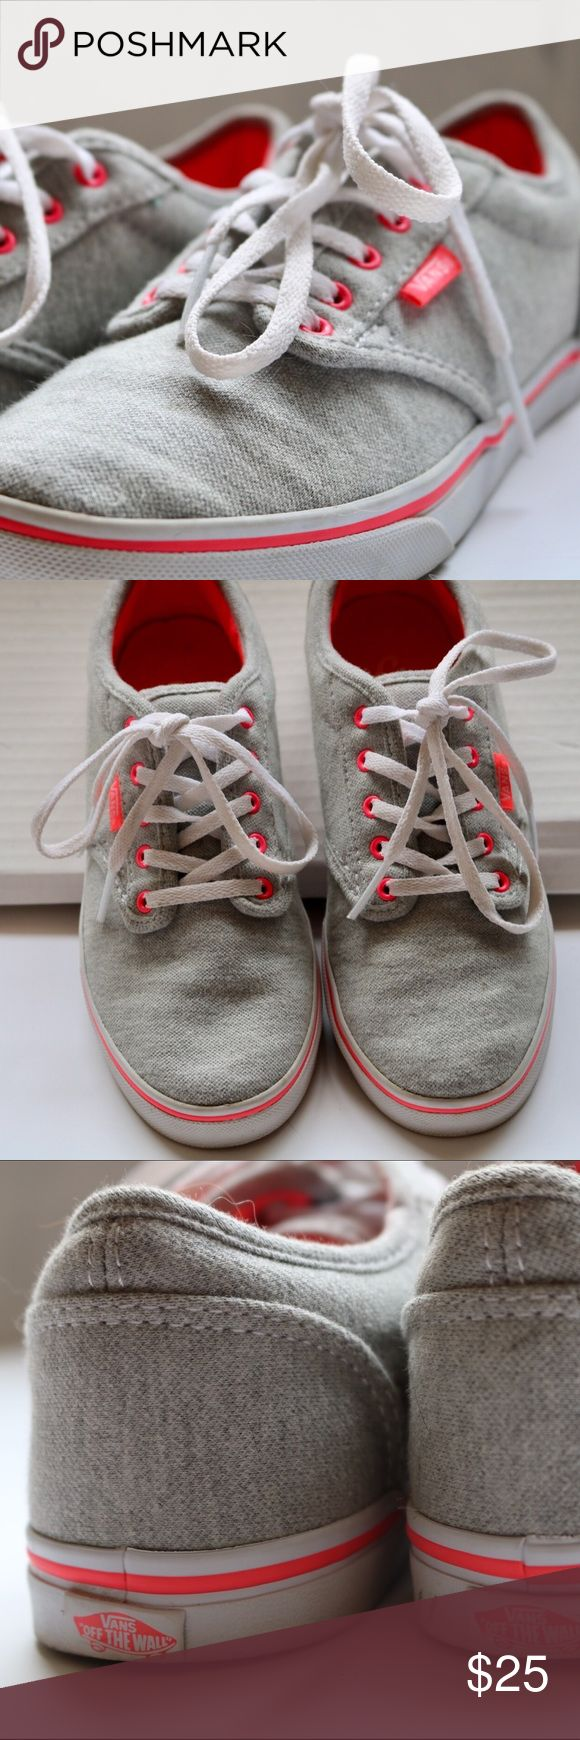 Pink and grey vans Grey vans tennis shoes with pink highlights inside the shoes, a line at the bottom, the tag, and the eyelets. Along with white lasses and white at the bottom of the shoe.                            ⭐️great condition, only worn once.                       🚫no trades Vans Shoes Sneakers